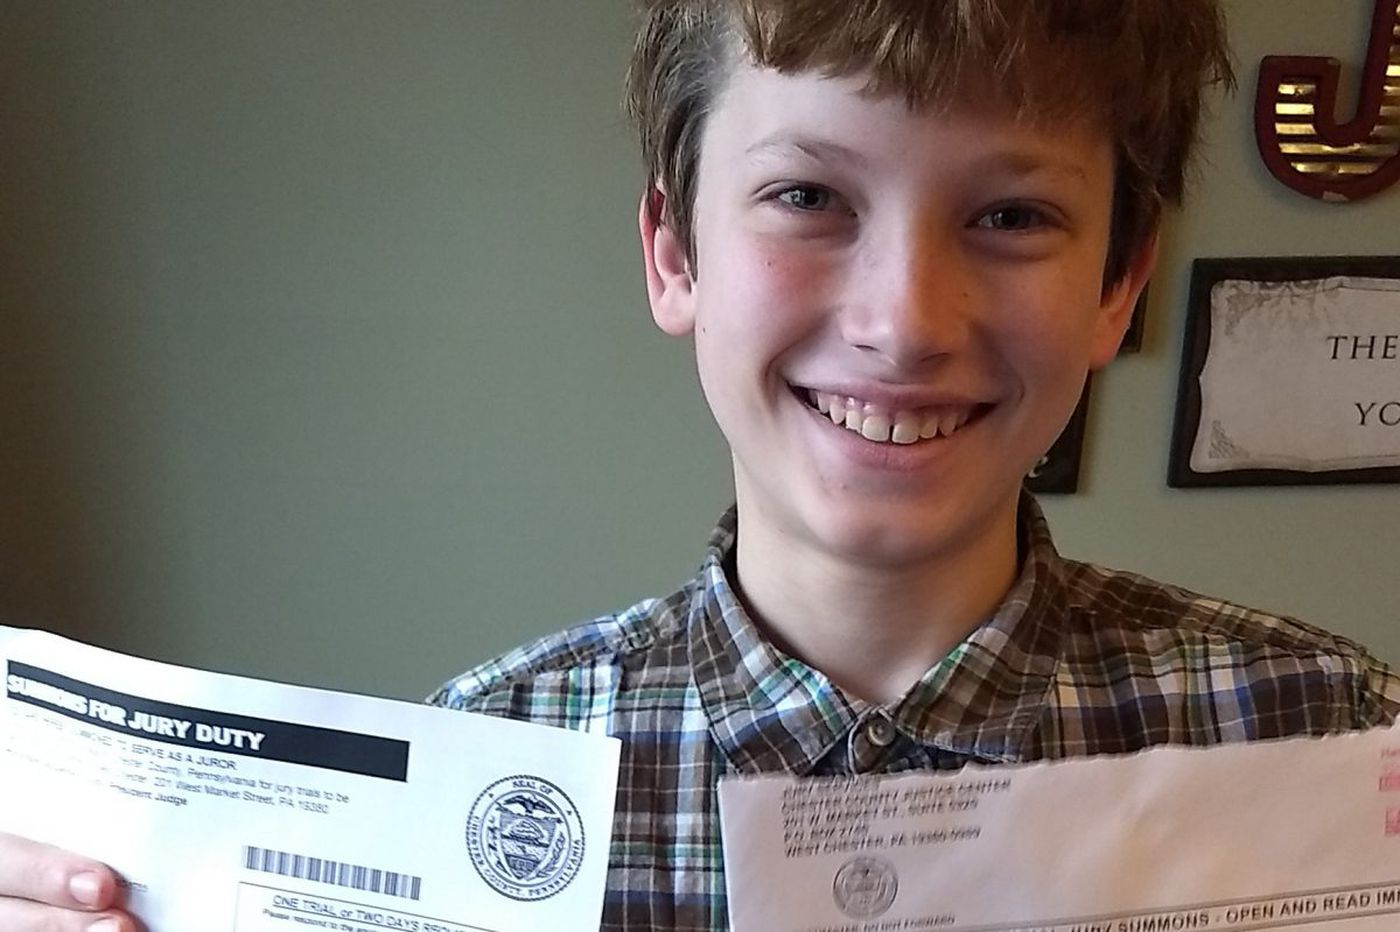 Boy Scout, 11, summoned for jury duty in West Chester